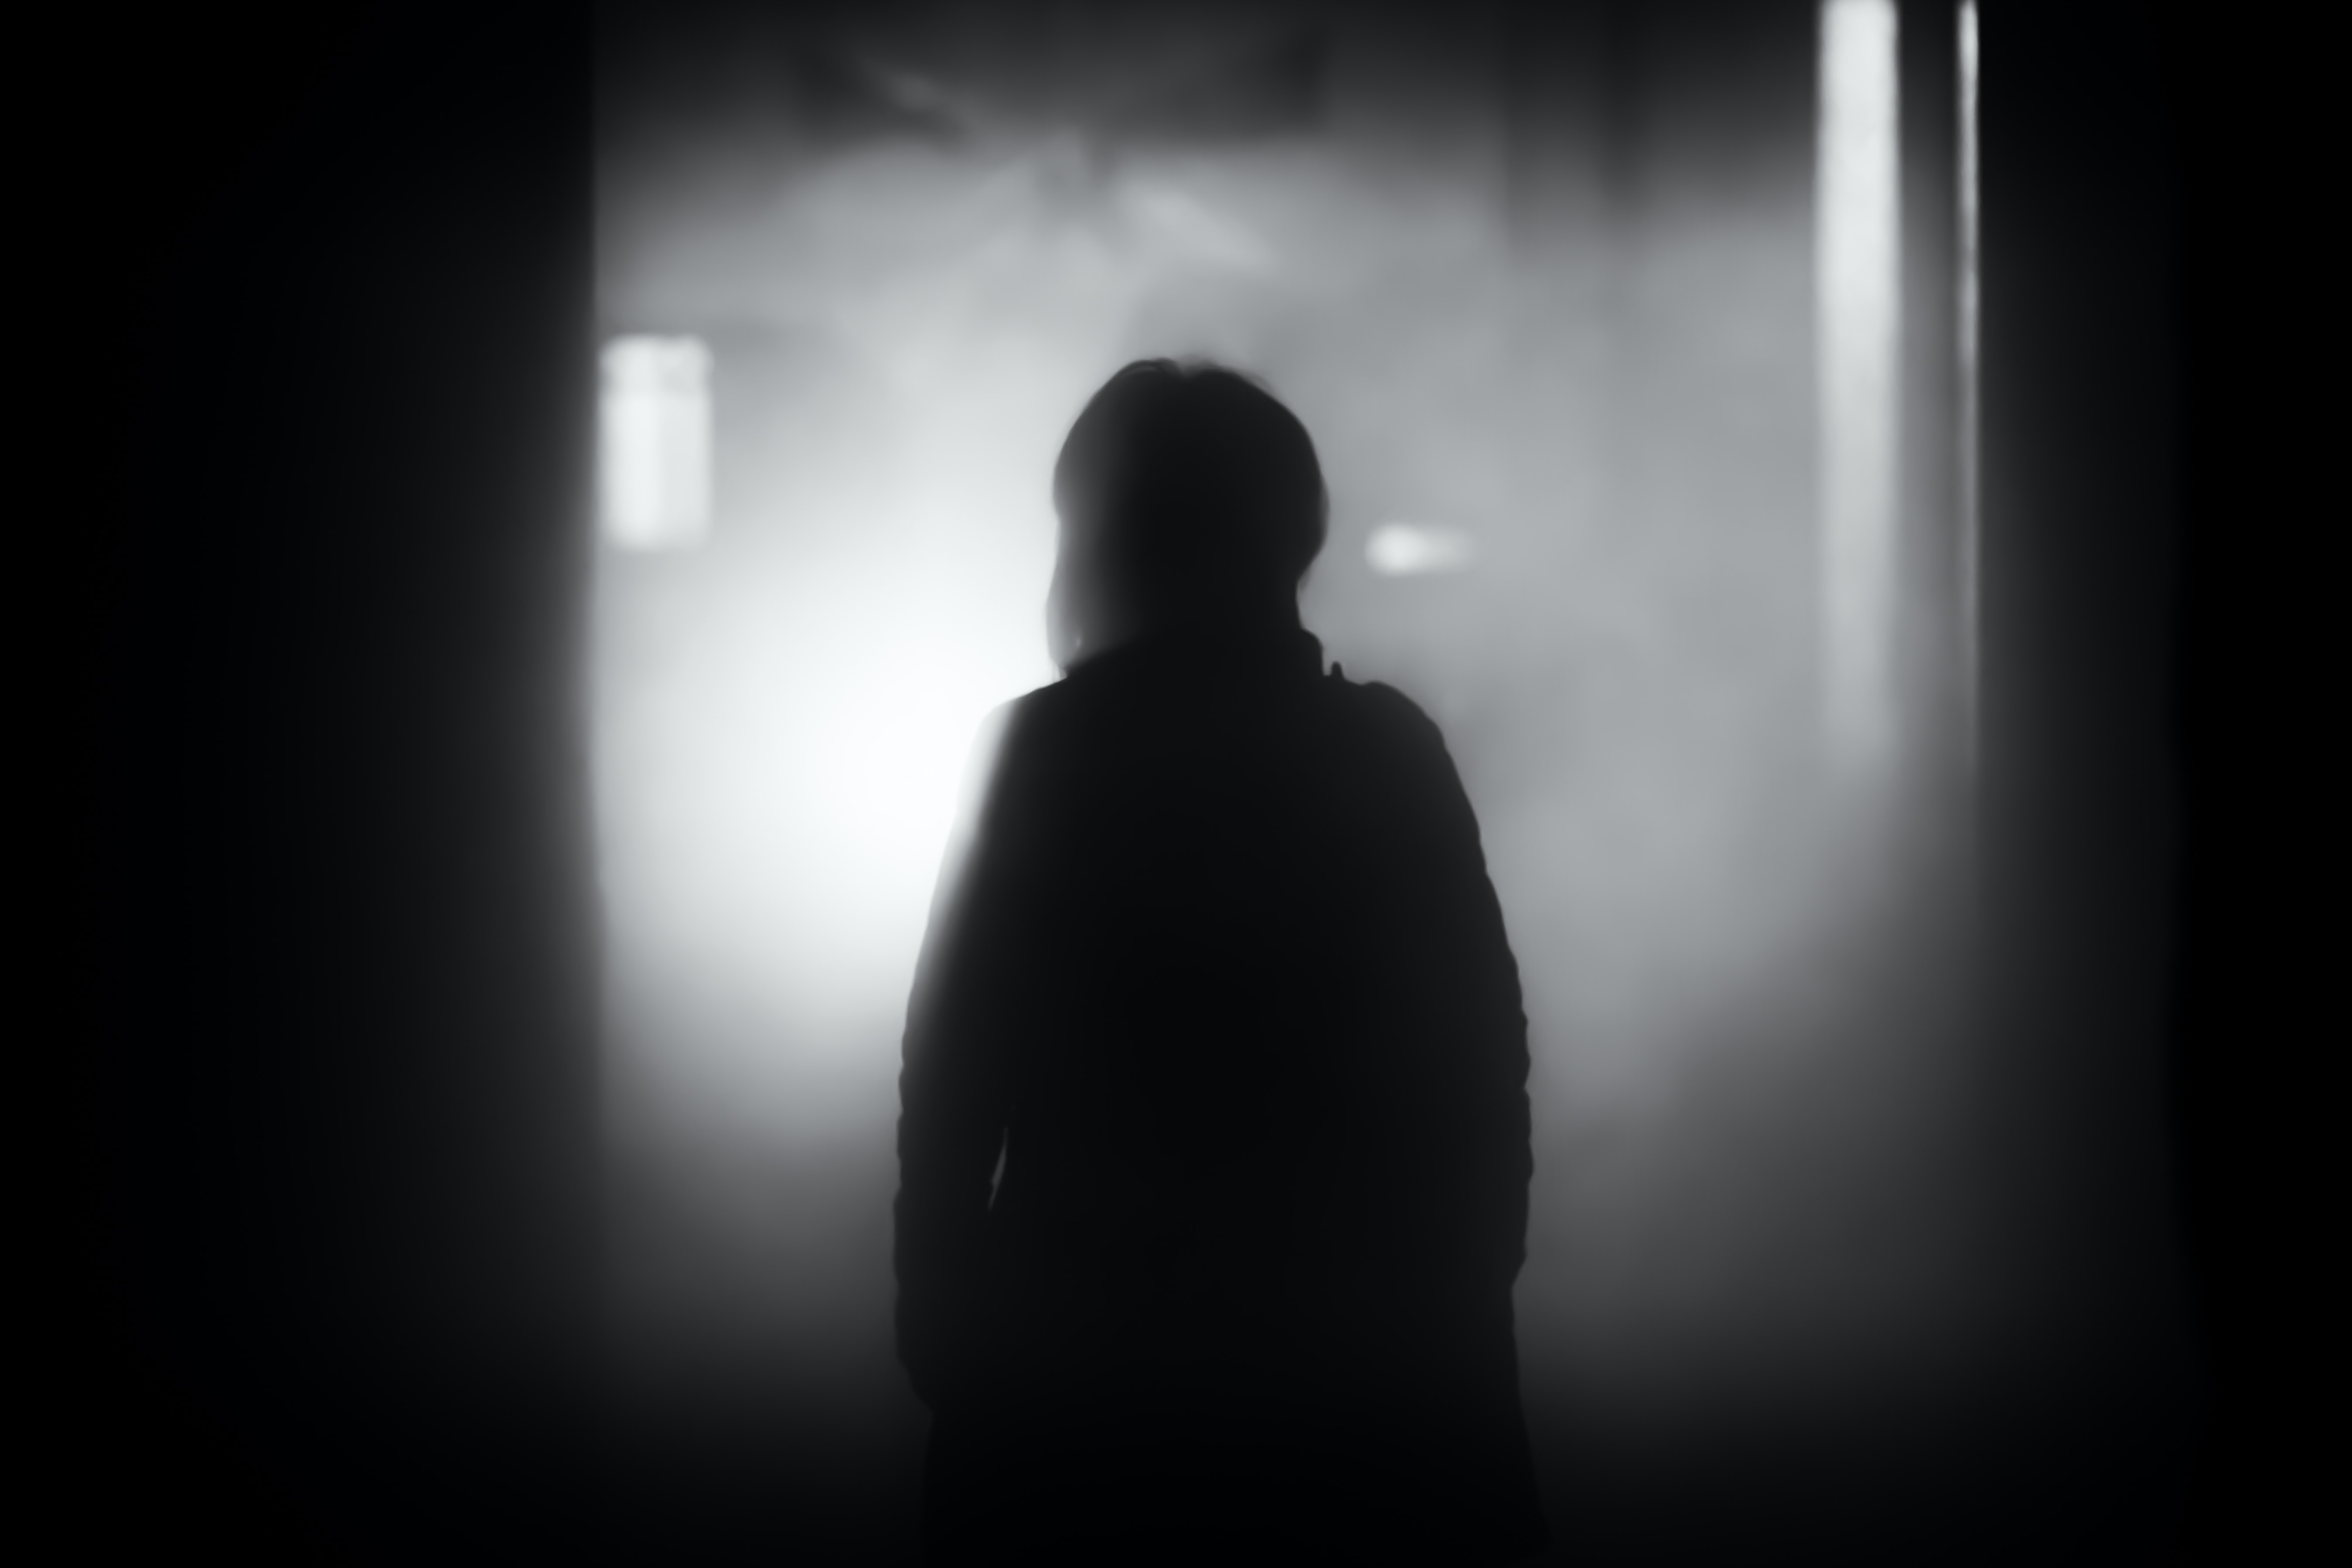 A dark silhouette of a person staring at lights and shadows in a building